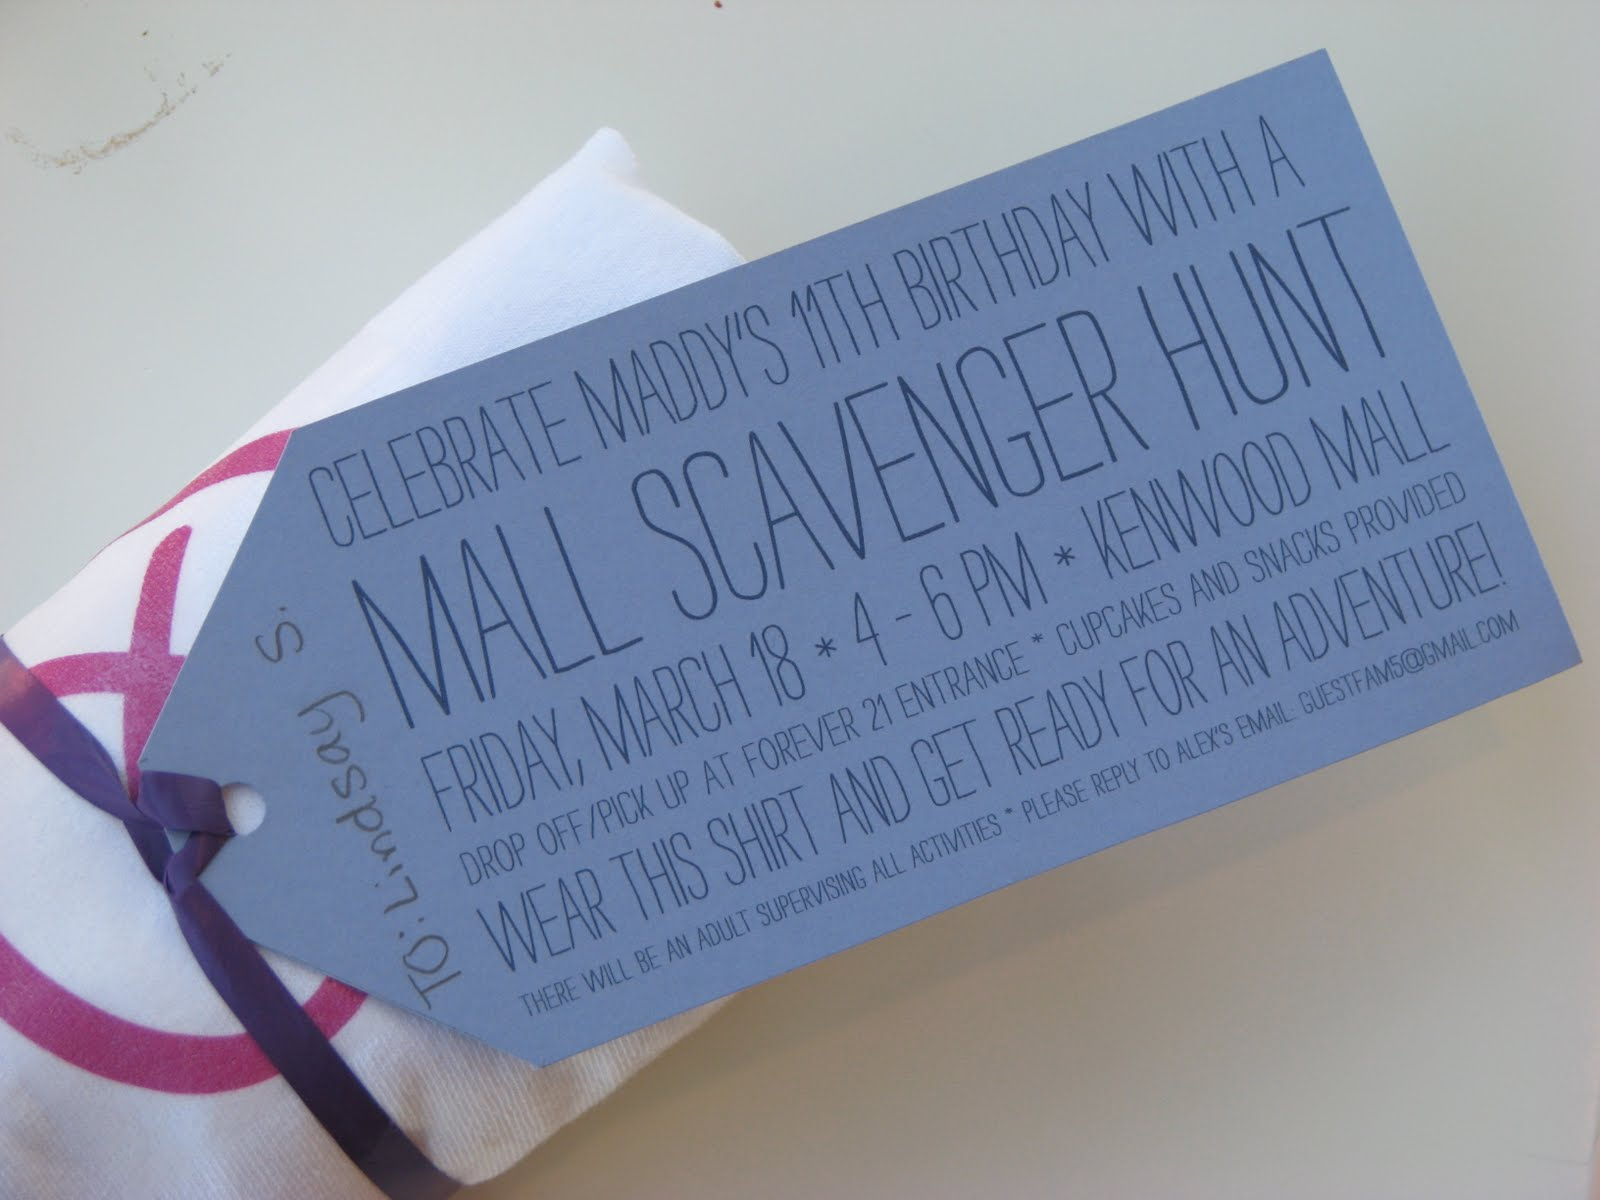 MargotMadison: Mall Scavenger Hunt Party for Tweens